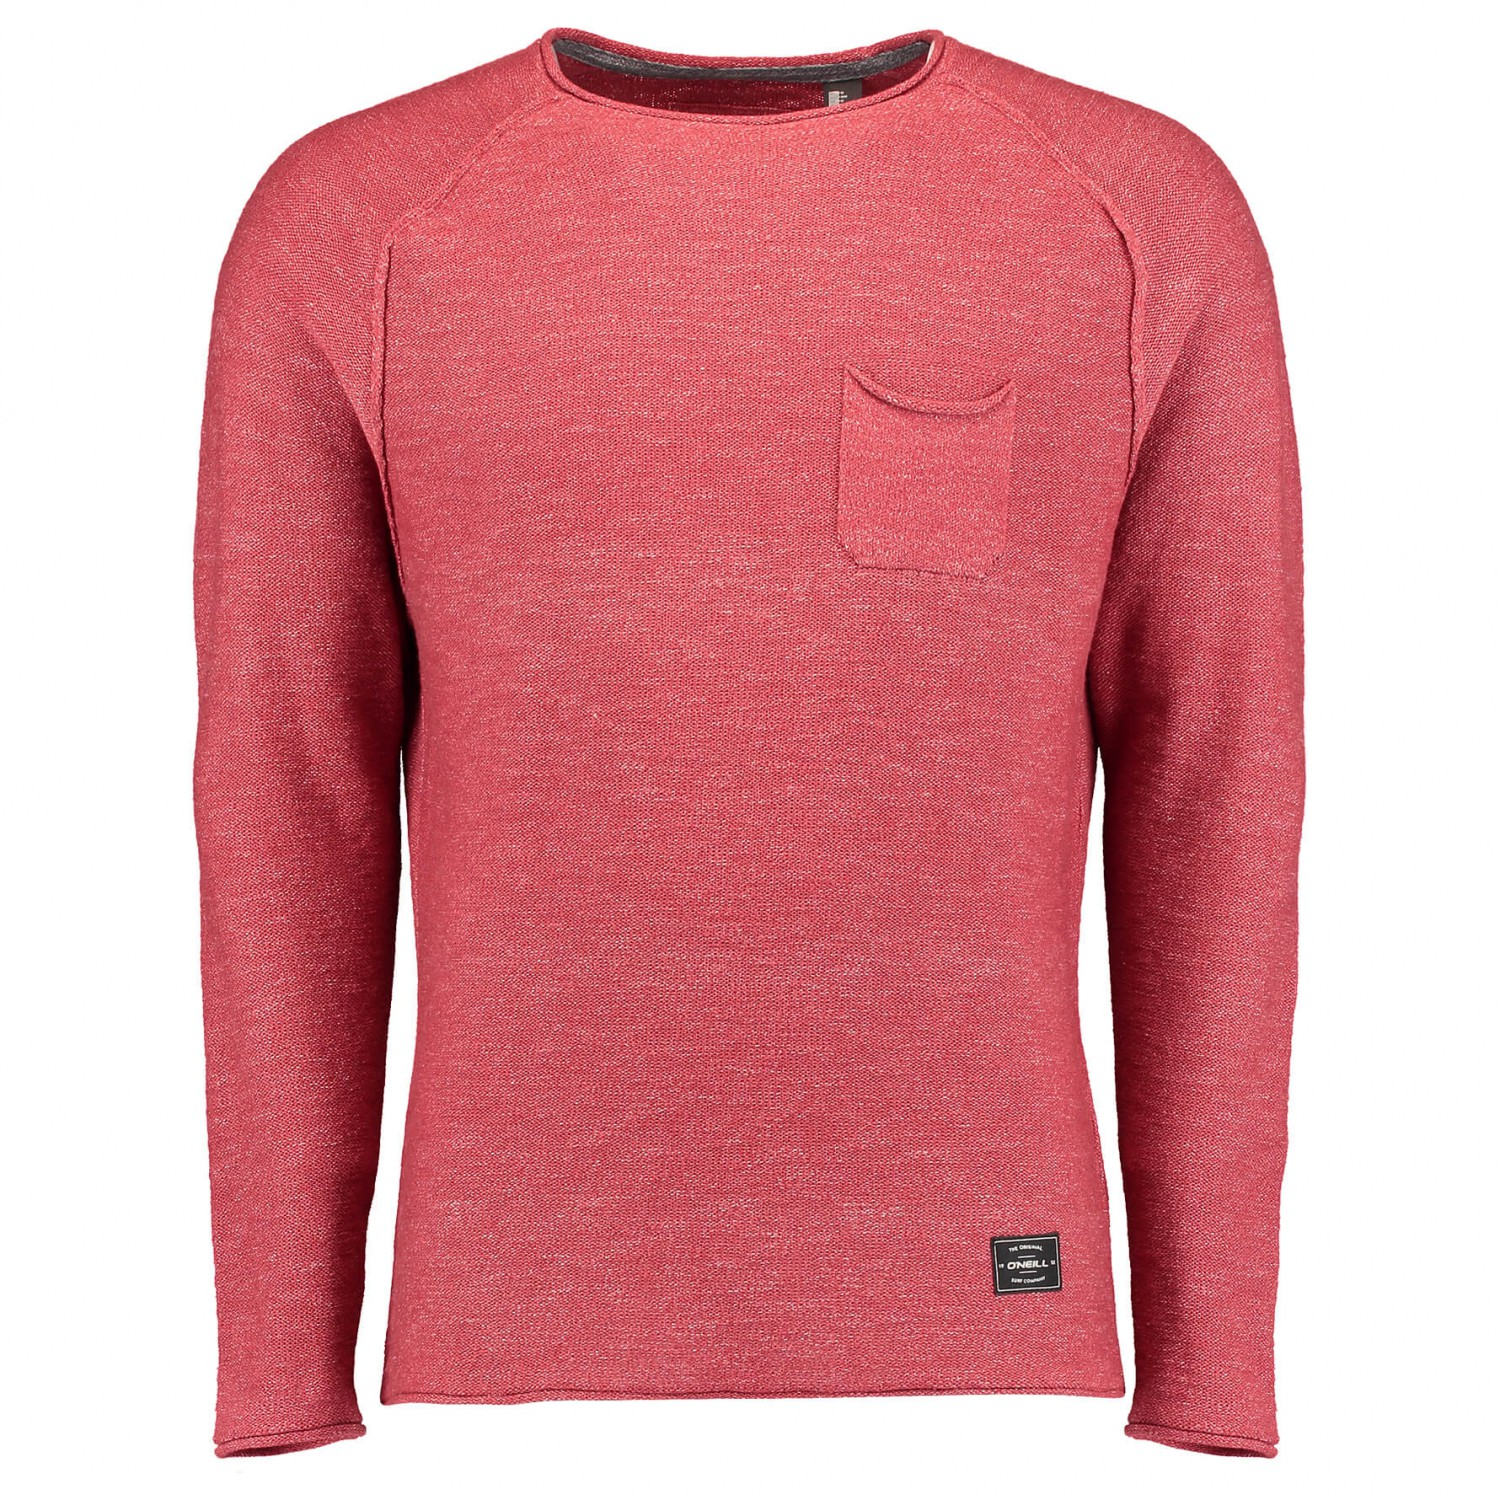 Online Sleeve Pullover Jacks O'neill Men's Base Long Buy wx1SnPqAF